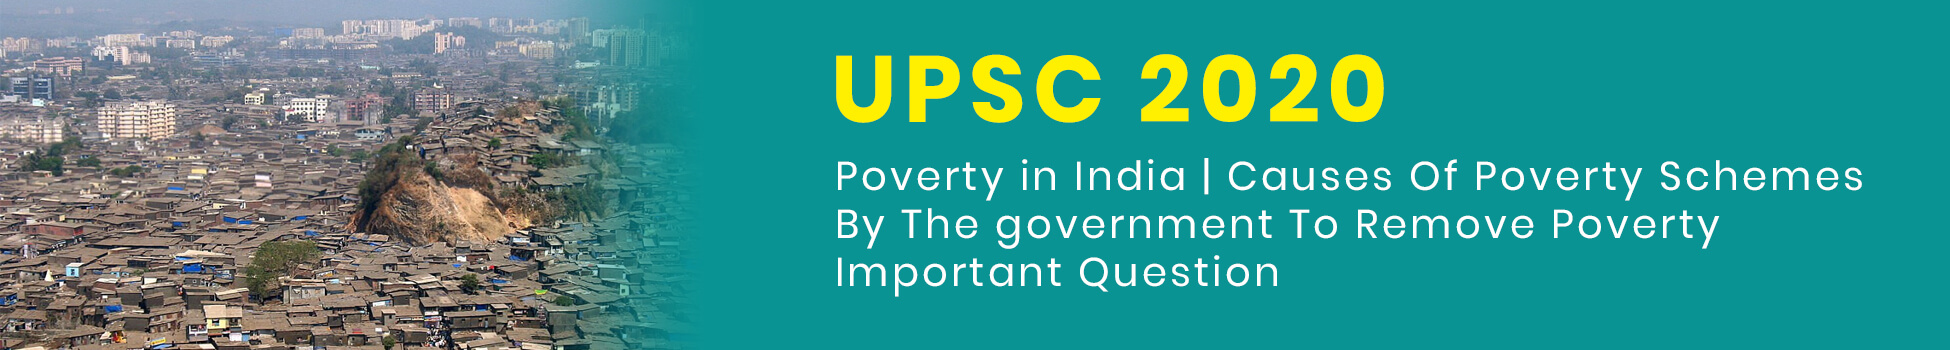 Poverty in India | Causes Of Poverty | Schemes By The government To Remove Poverty | Important Question UPSC 2020